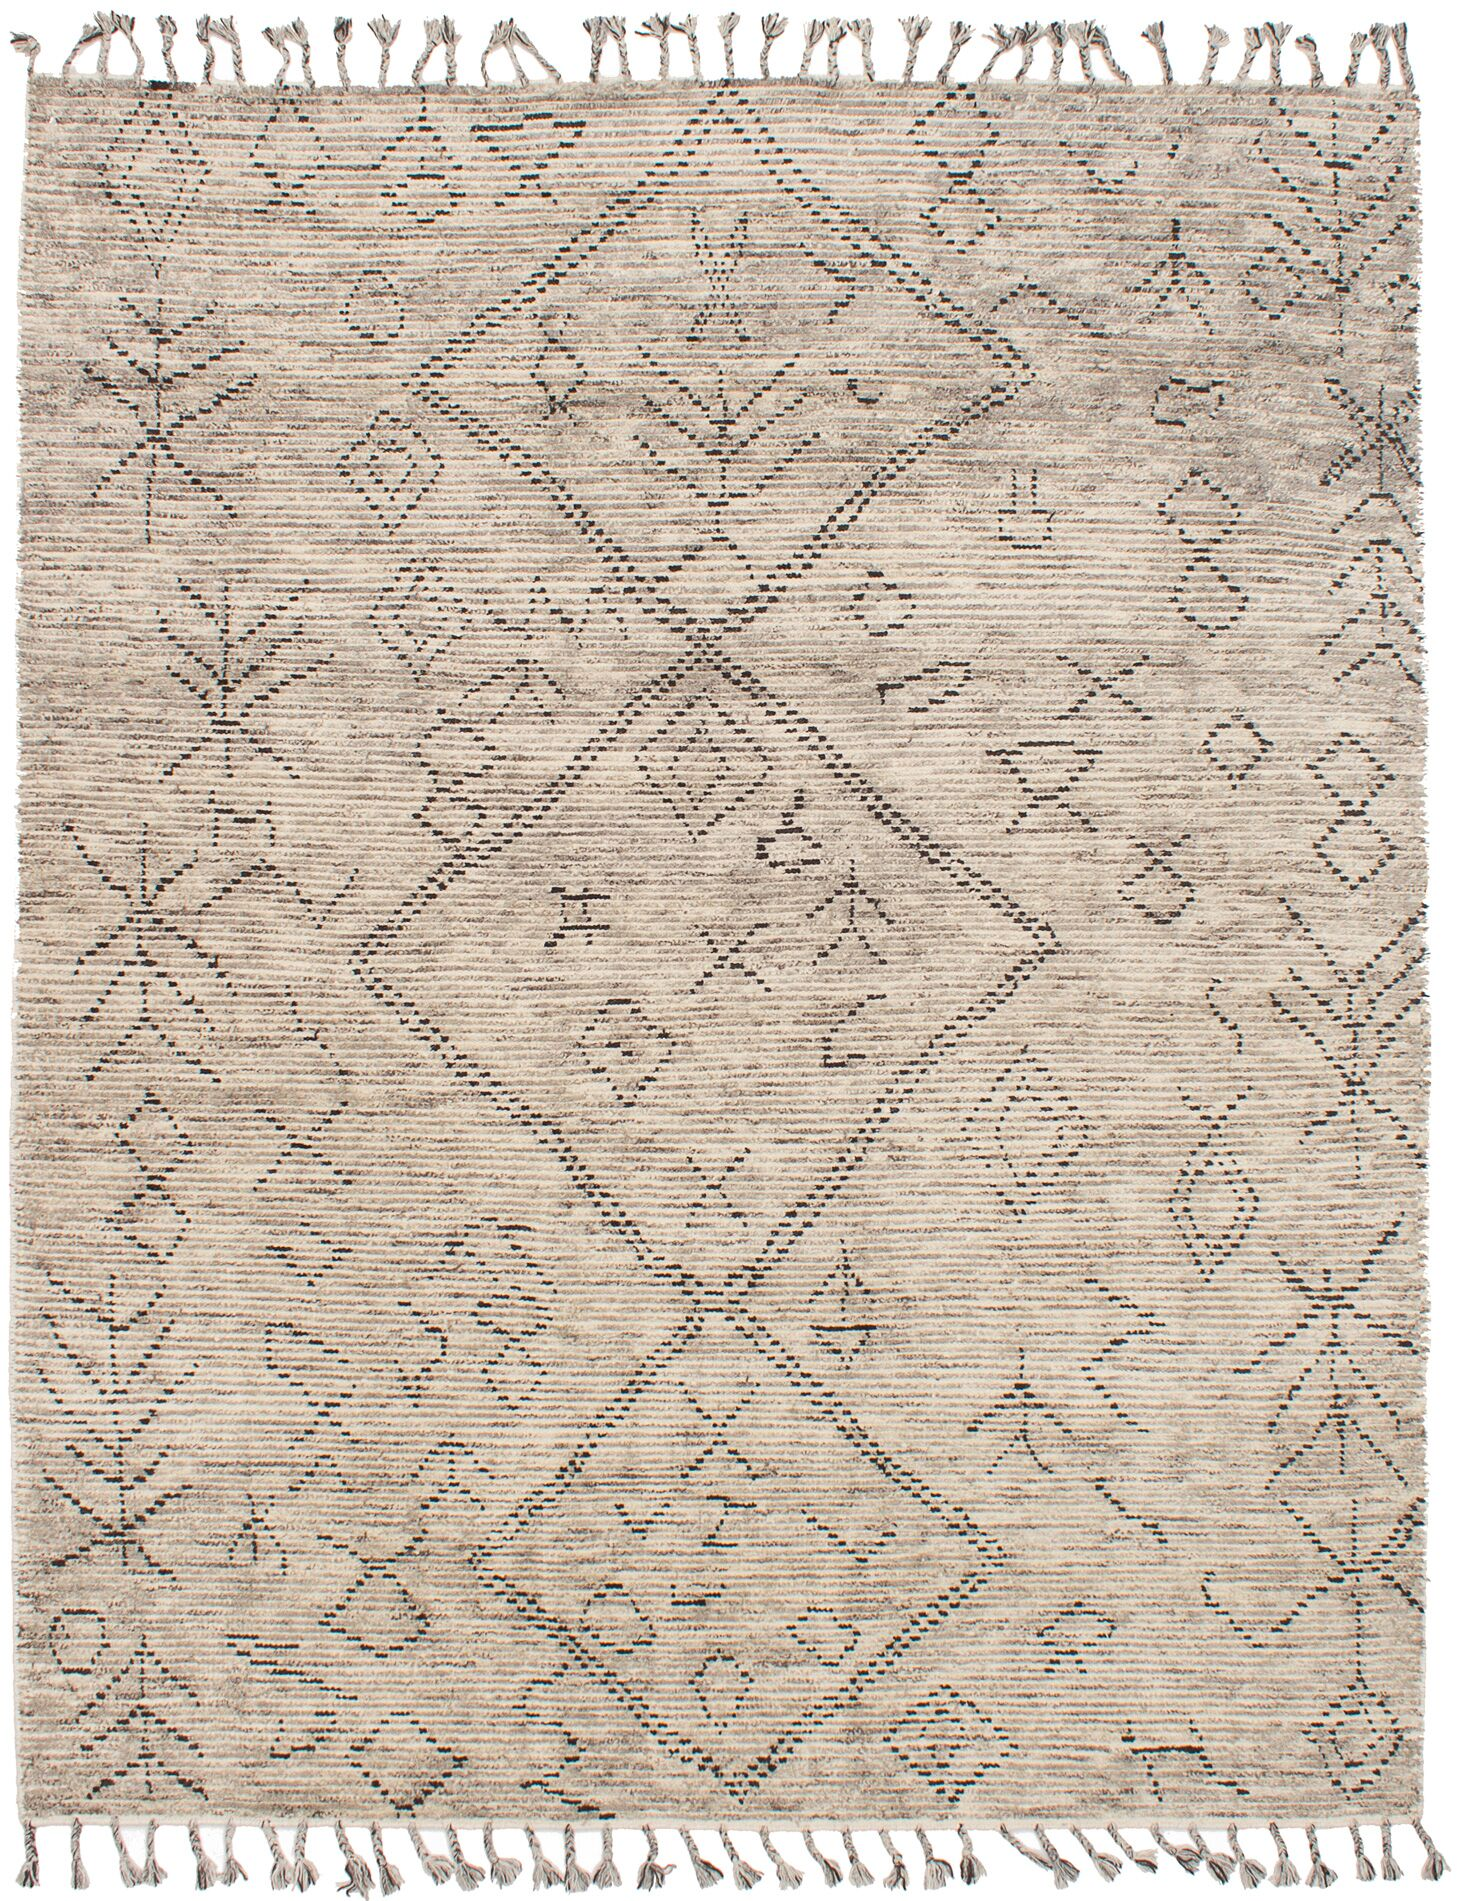 Canales Hand-Knotted Wool Cream Area Rug Rug Size: Rectangle 8' x 10'